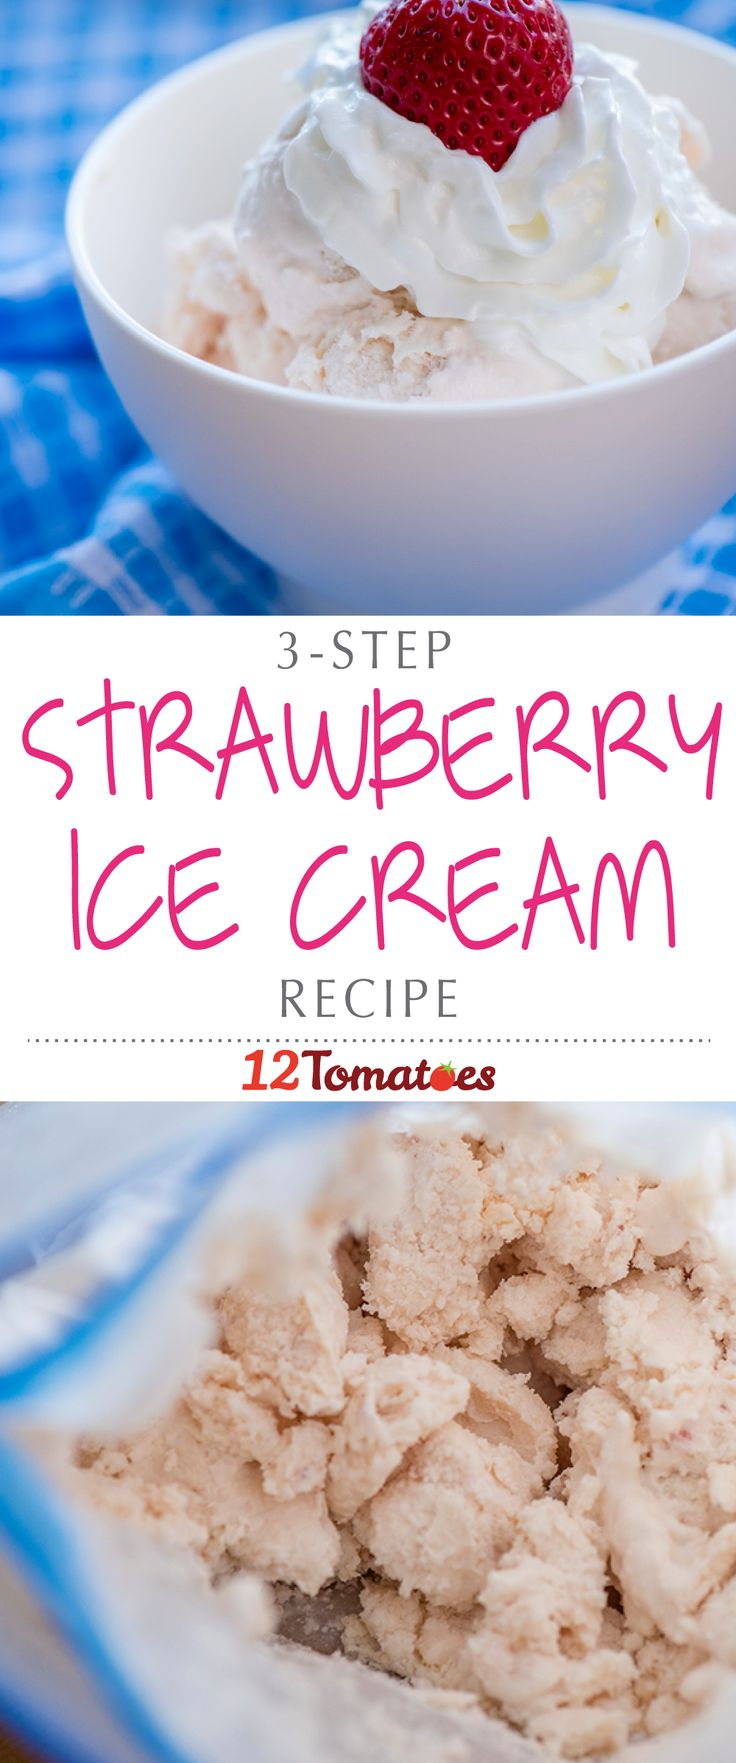 3-Step Strawberry Ice Cream | This might not be new for those of you who did this in a science class in elementary school, but with a few plastic bags, some ice and some rock salt, you can make some pretty amazing ice cream…and in under 20 minutes!